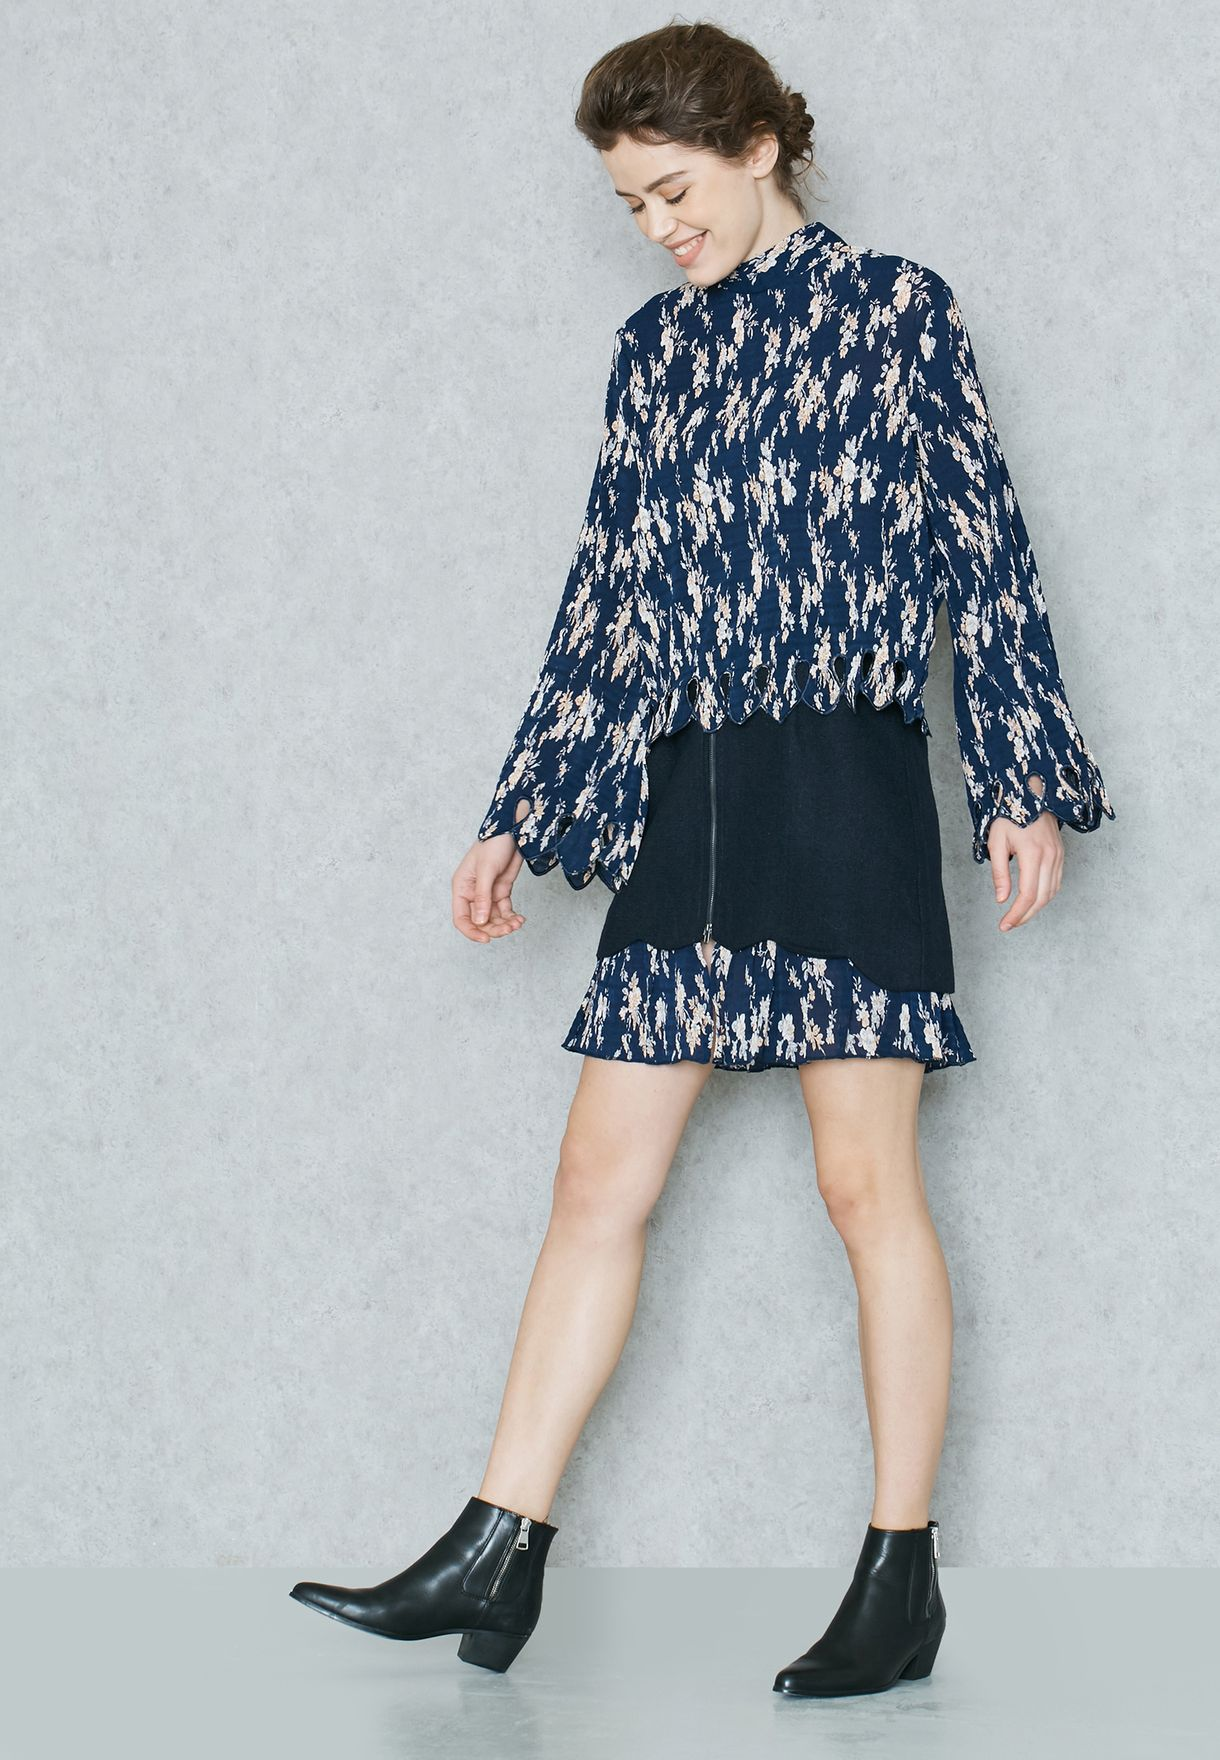 585dc3fcc89 Shop I Love Friday navy Printed Layered Skirt SM14182 for Women in ...